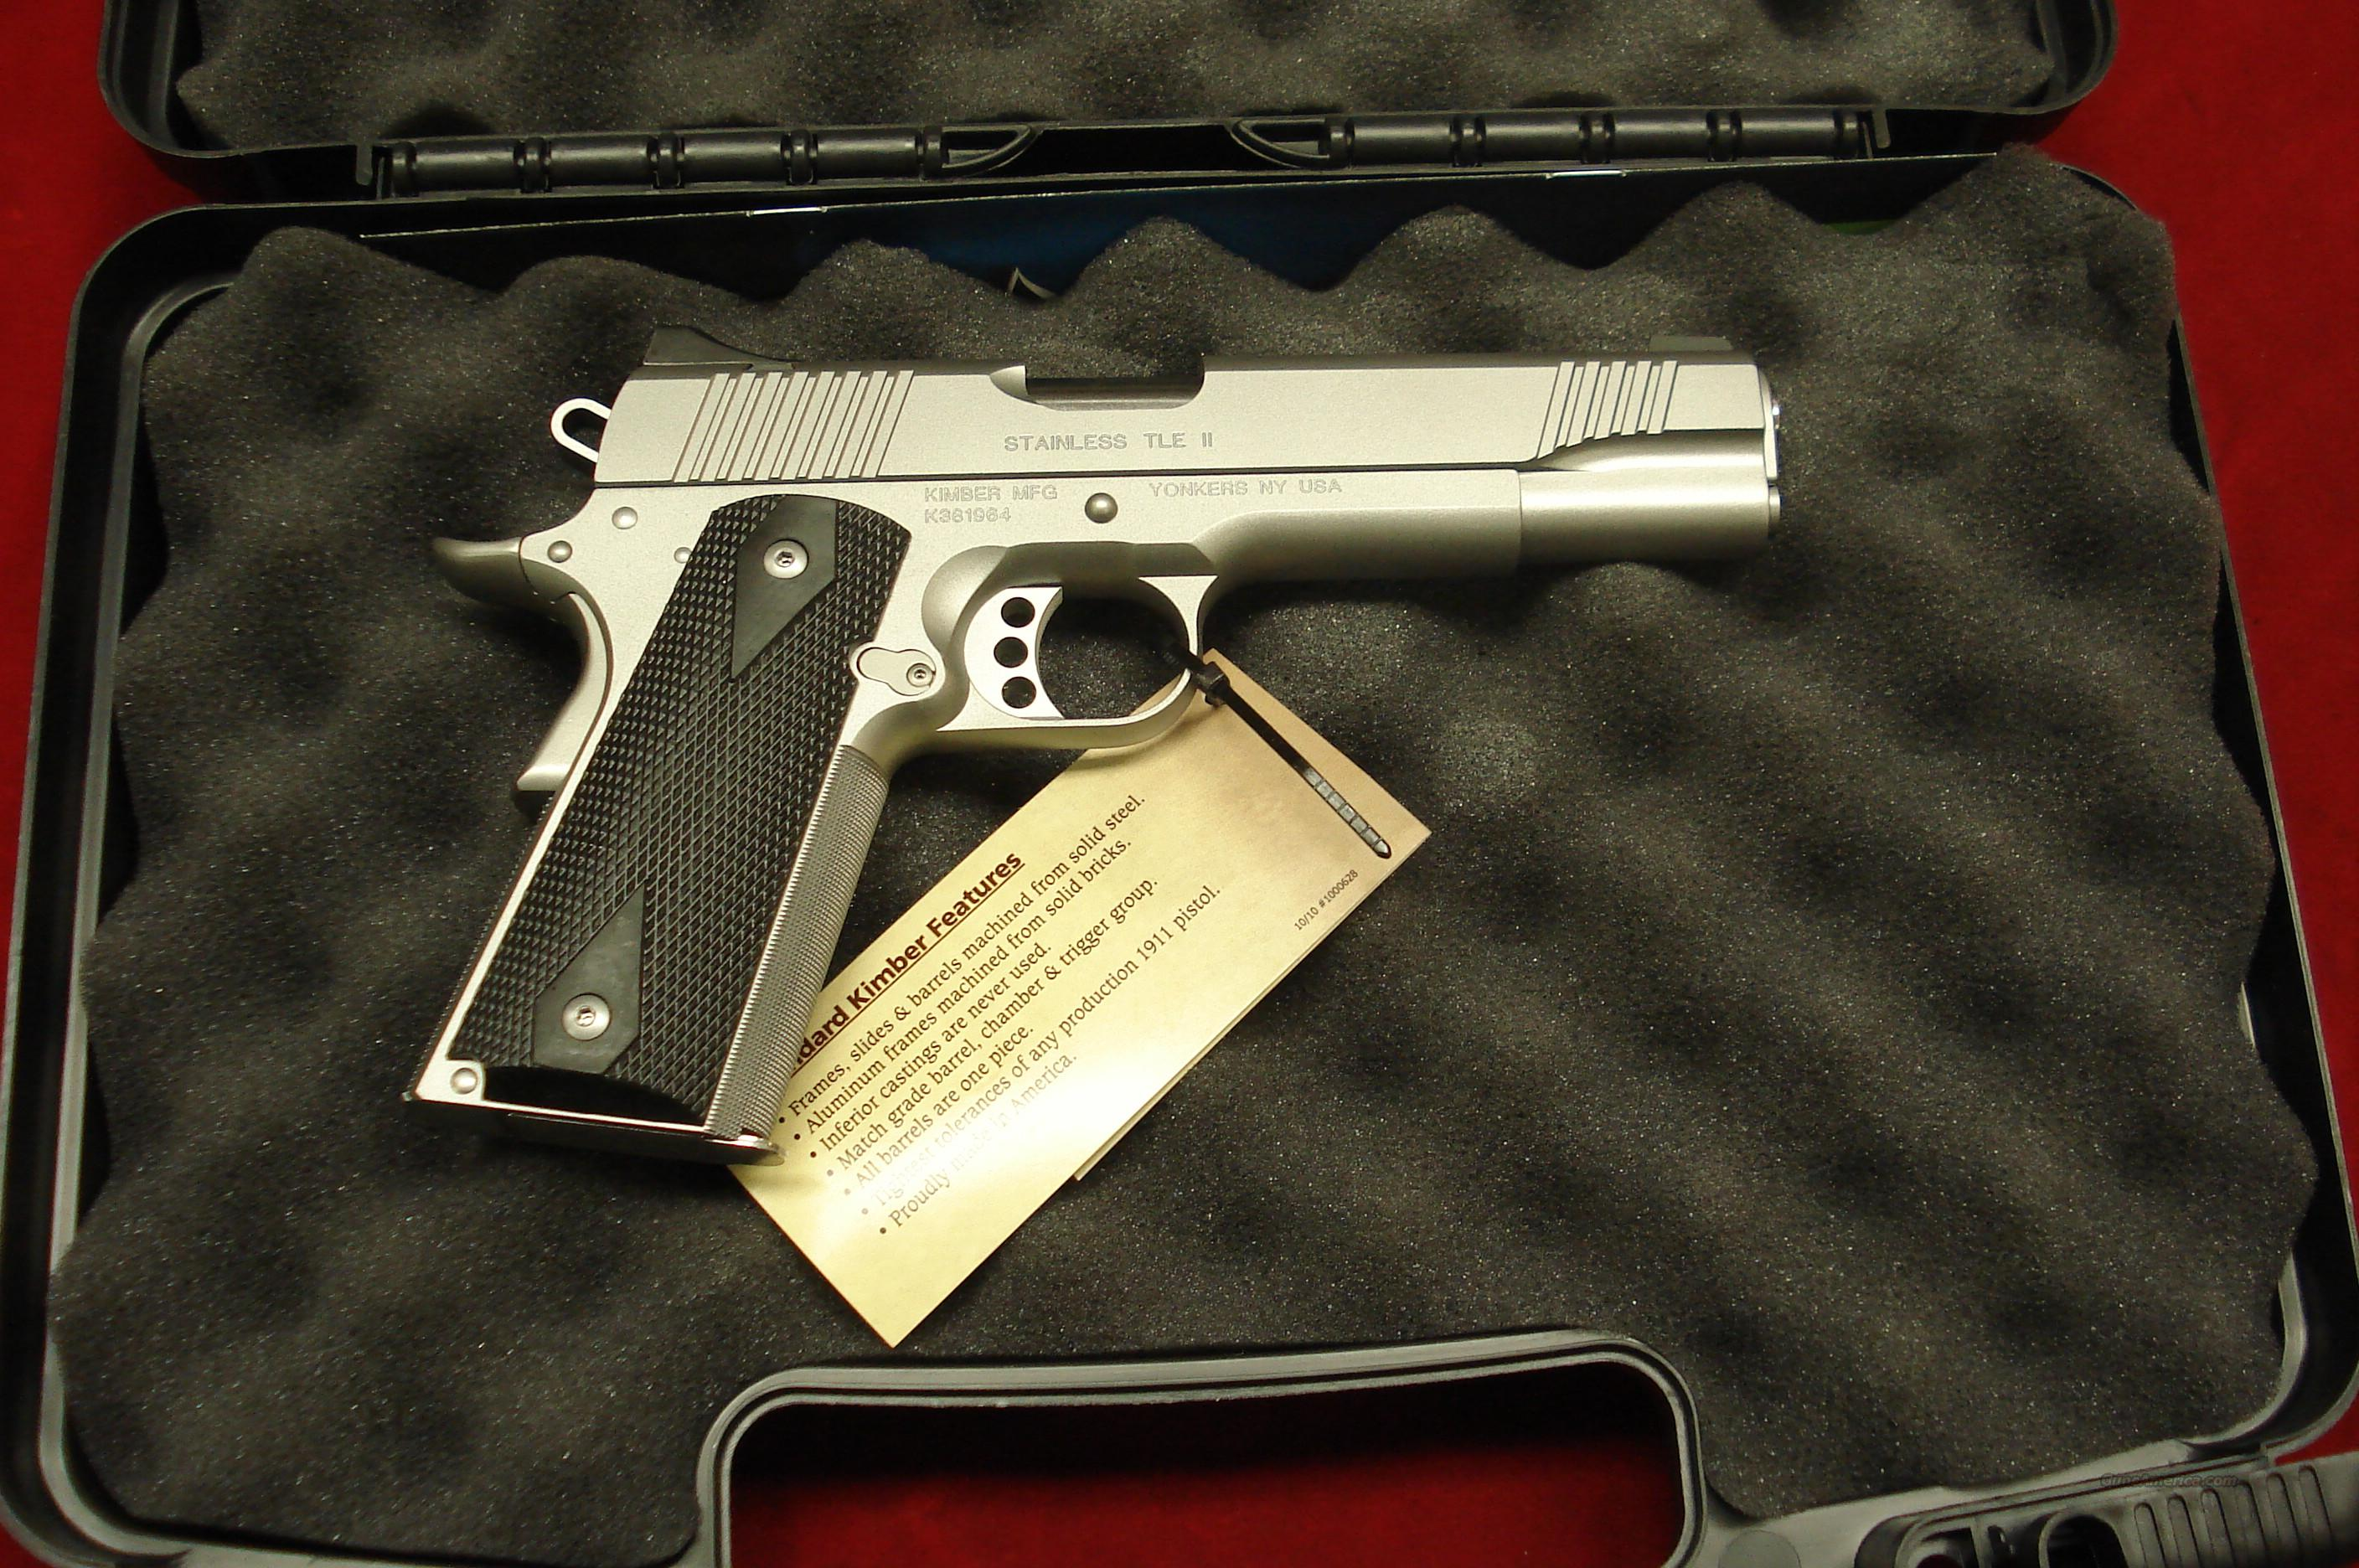 KIMBER STAINLESS TLE II 45ACP NIGHT SIGHTS NEW   Guns > Pistols > Kimber of America Pistols